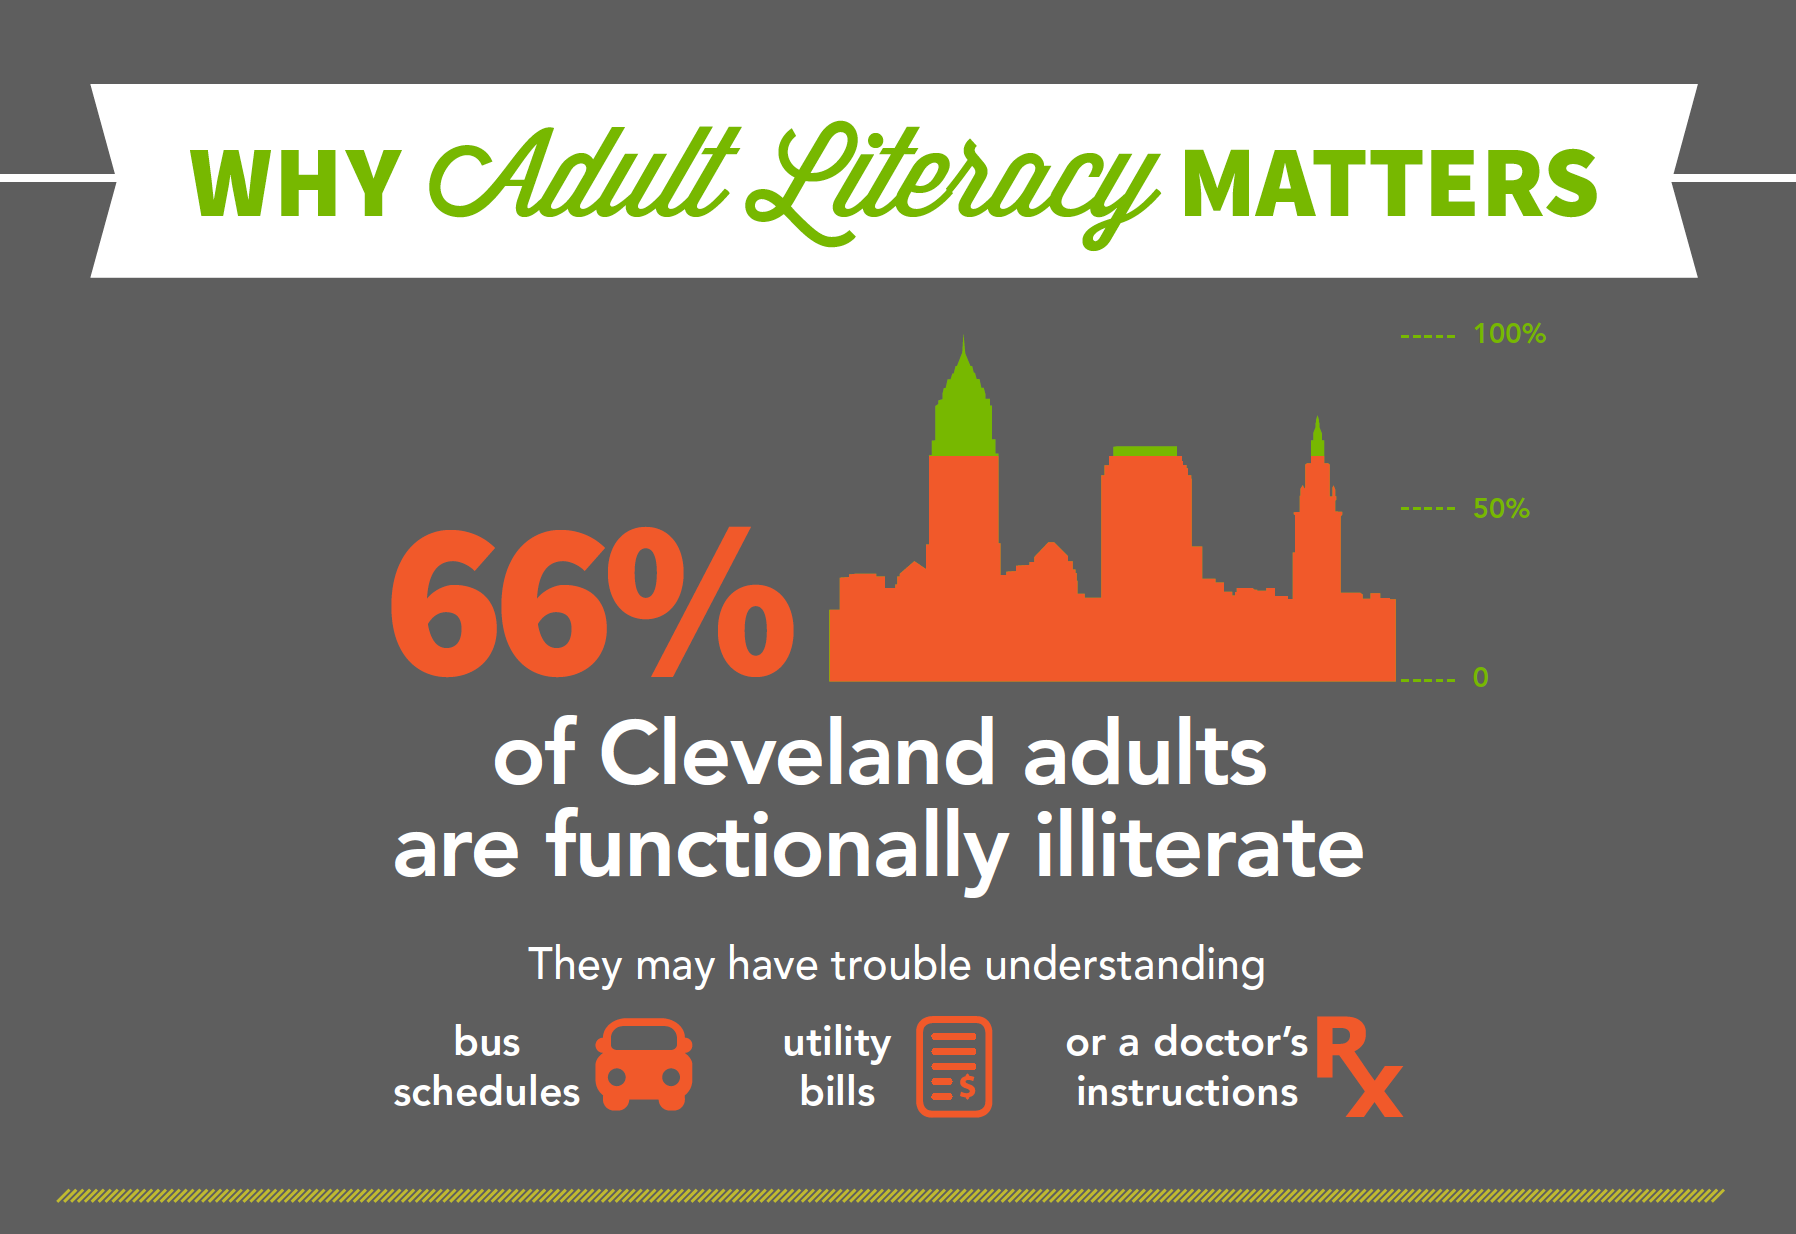 Click here to view the full adult literacy info-graphic created by Seeds of Literacy.